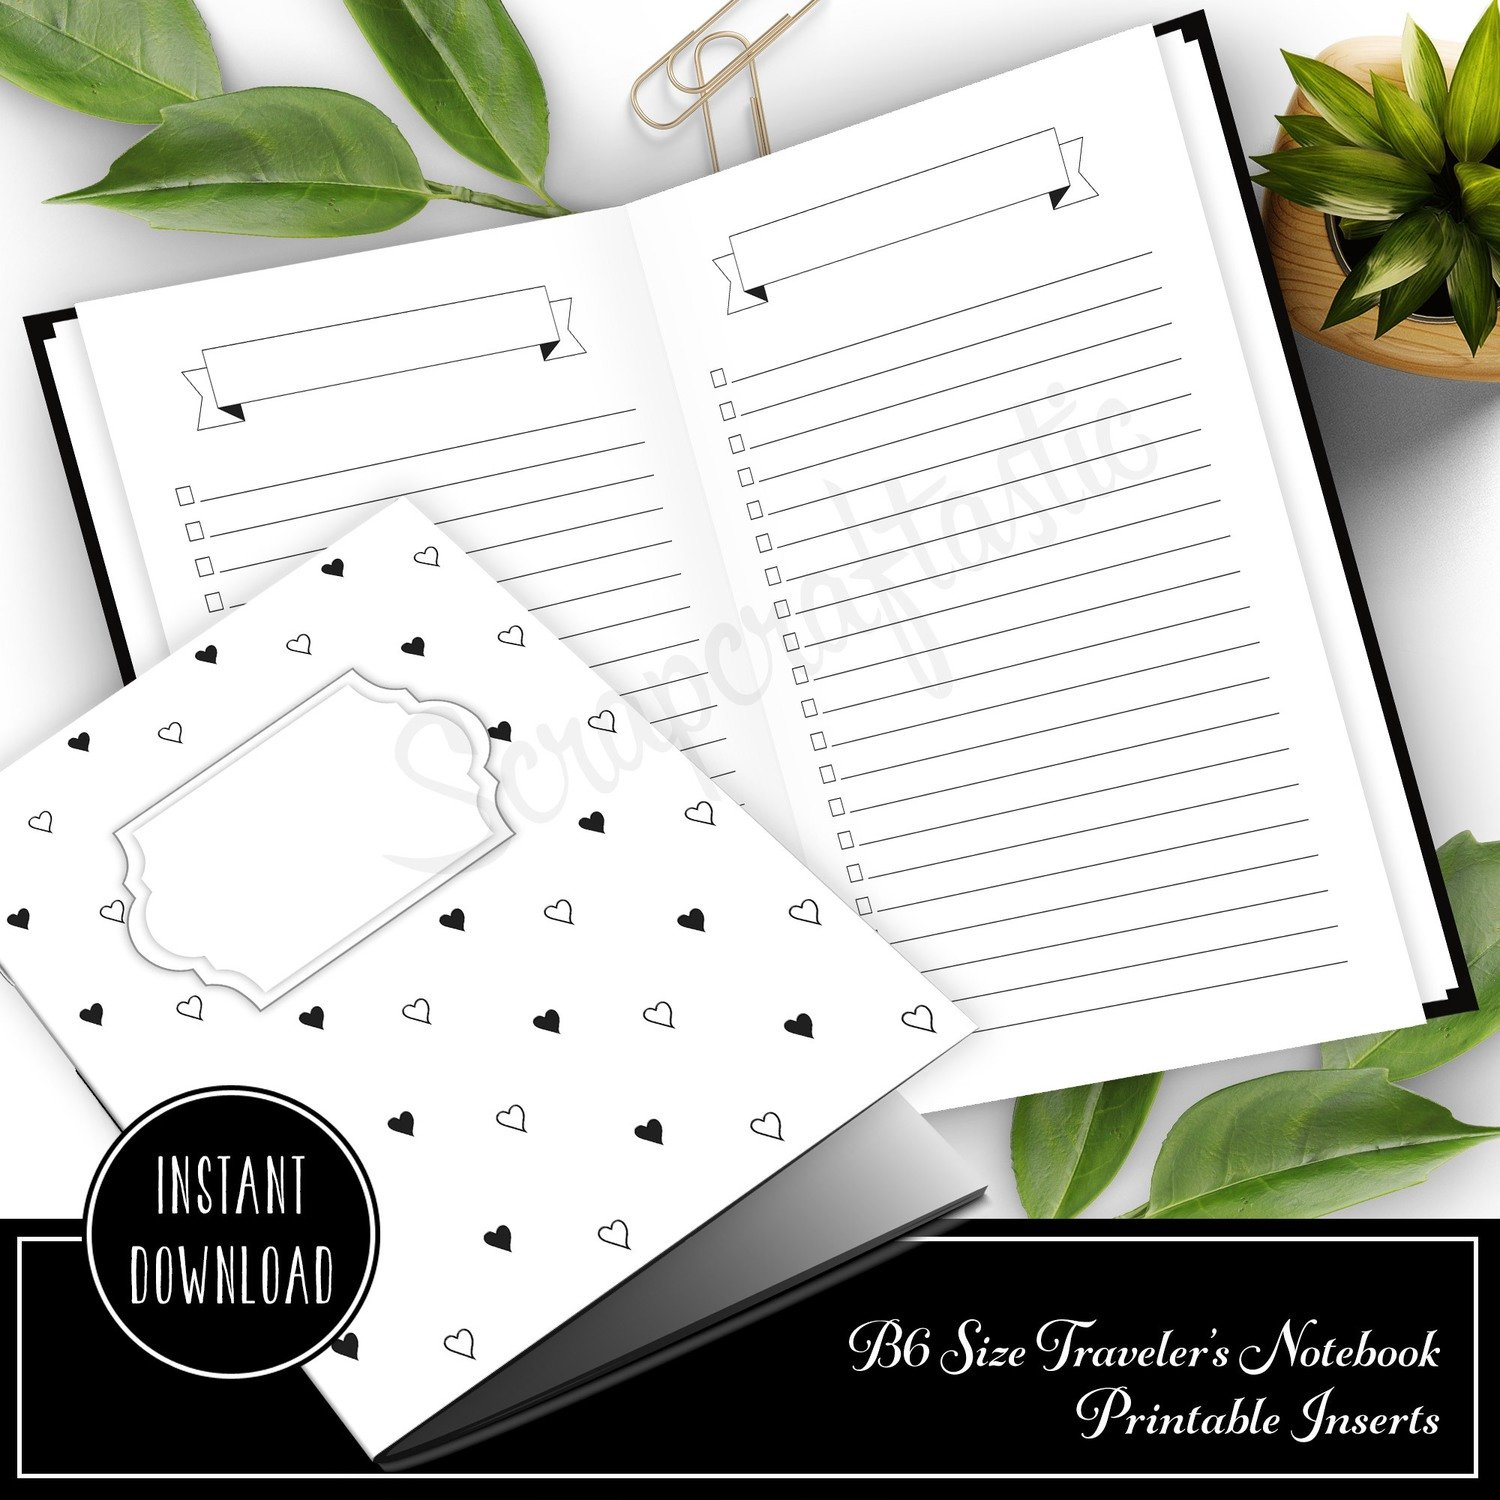 Banner Header and Check List Planner Printable Insert Refill for B6 Traveler's Notebook